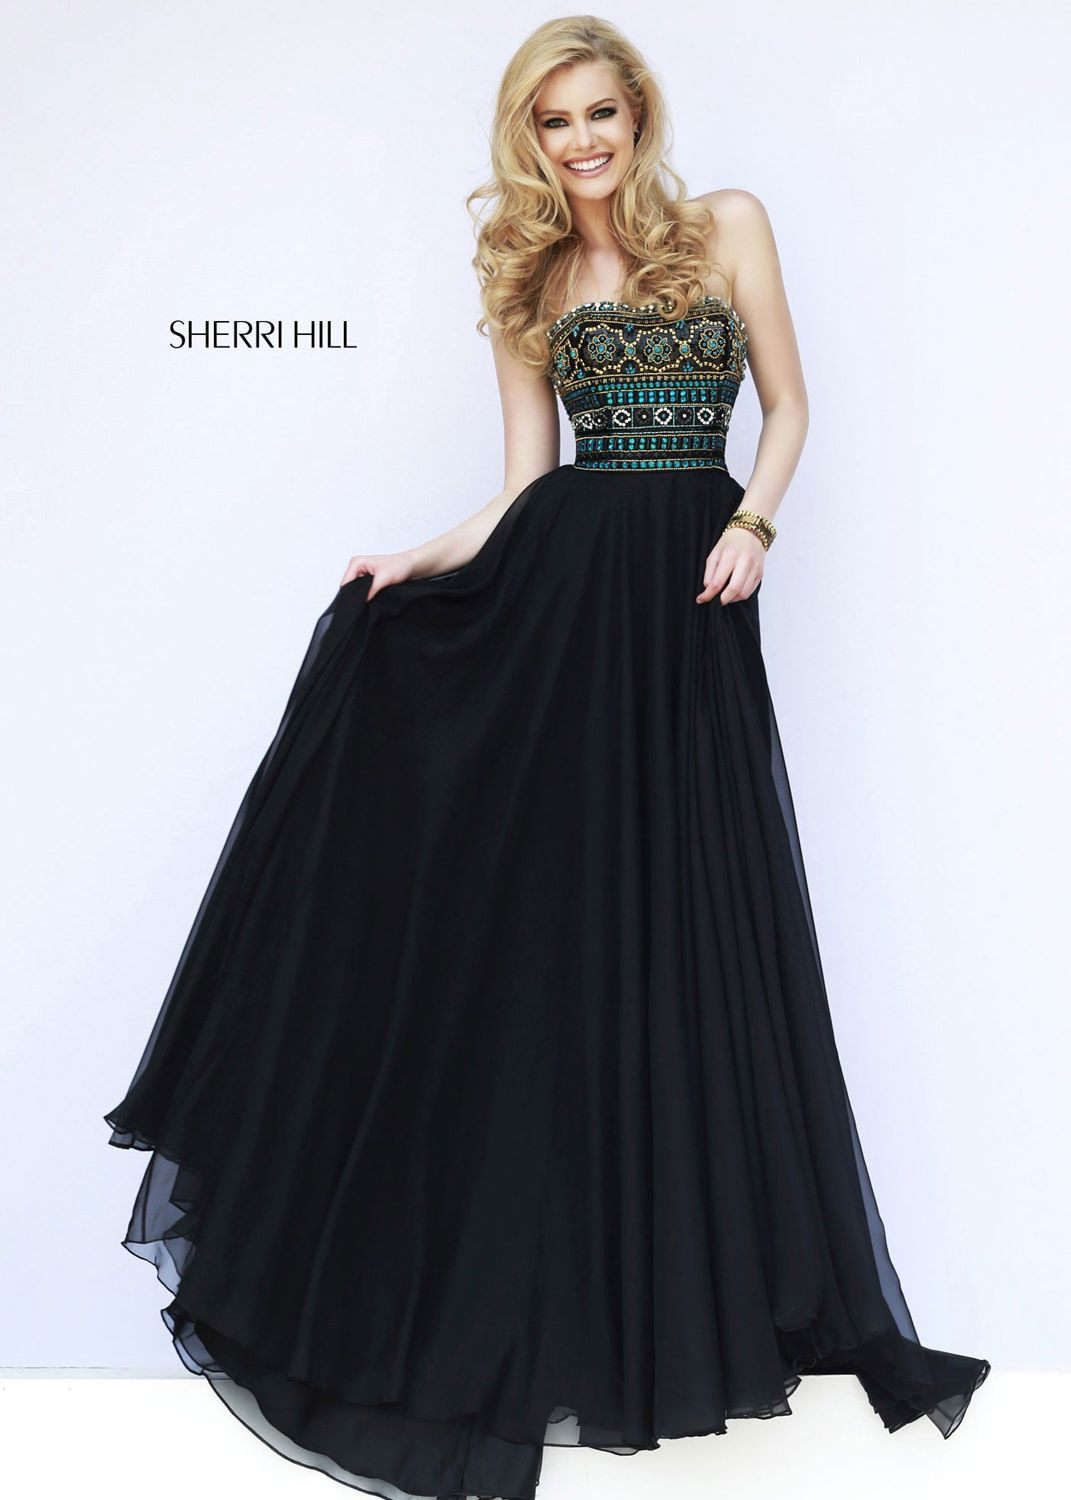 Sherri Hill 11175 Black Multi Strapless Chiffon Dress